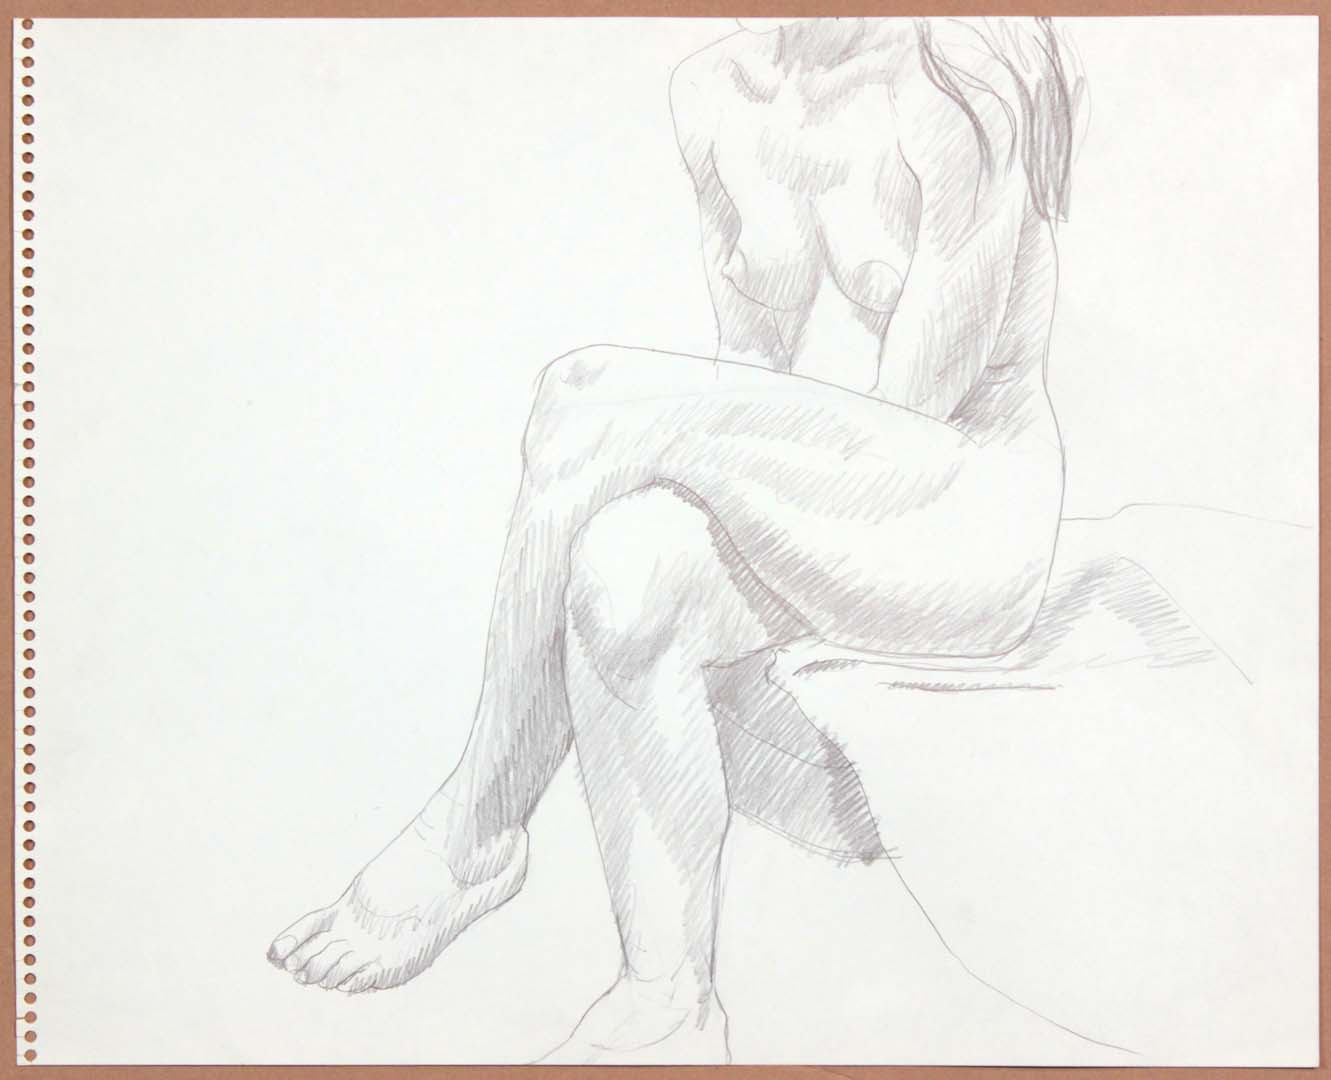 1965 Seated Female with Legs Crossed Graphite 13.75 x 17